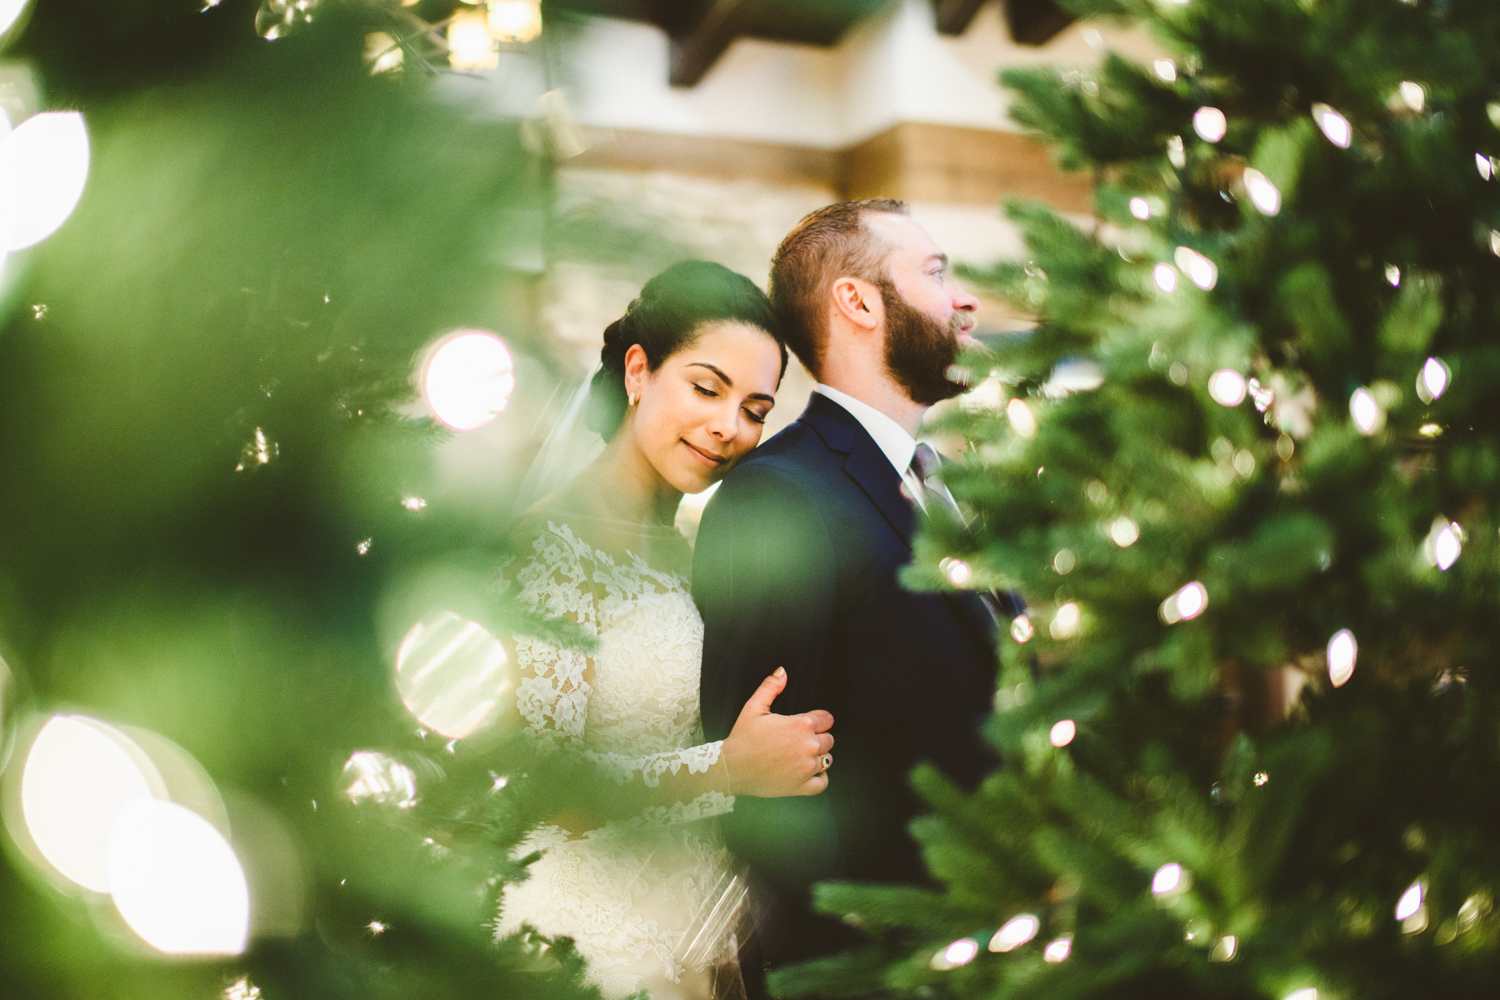 035a - gorgeous portrait of bride and groom with christmas lights in the foreground and the bride's cheek on groom's shoulder.jpg